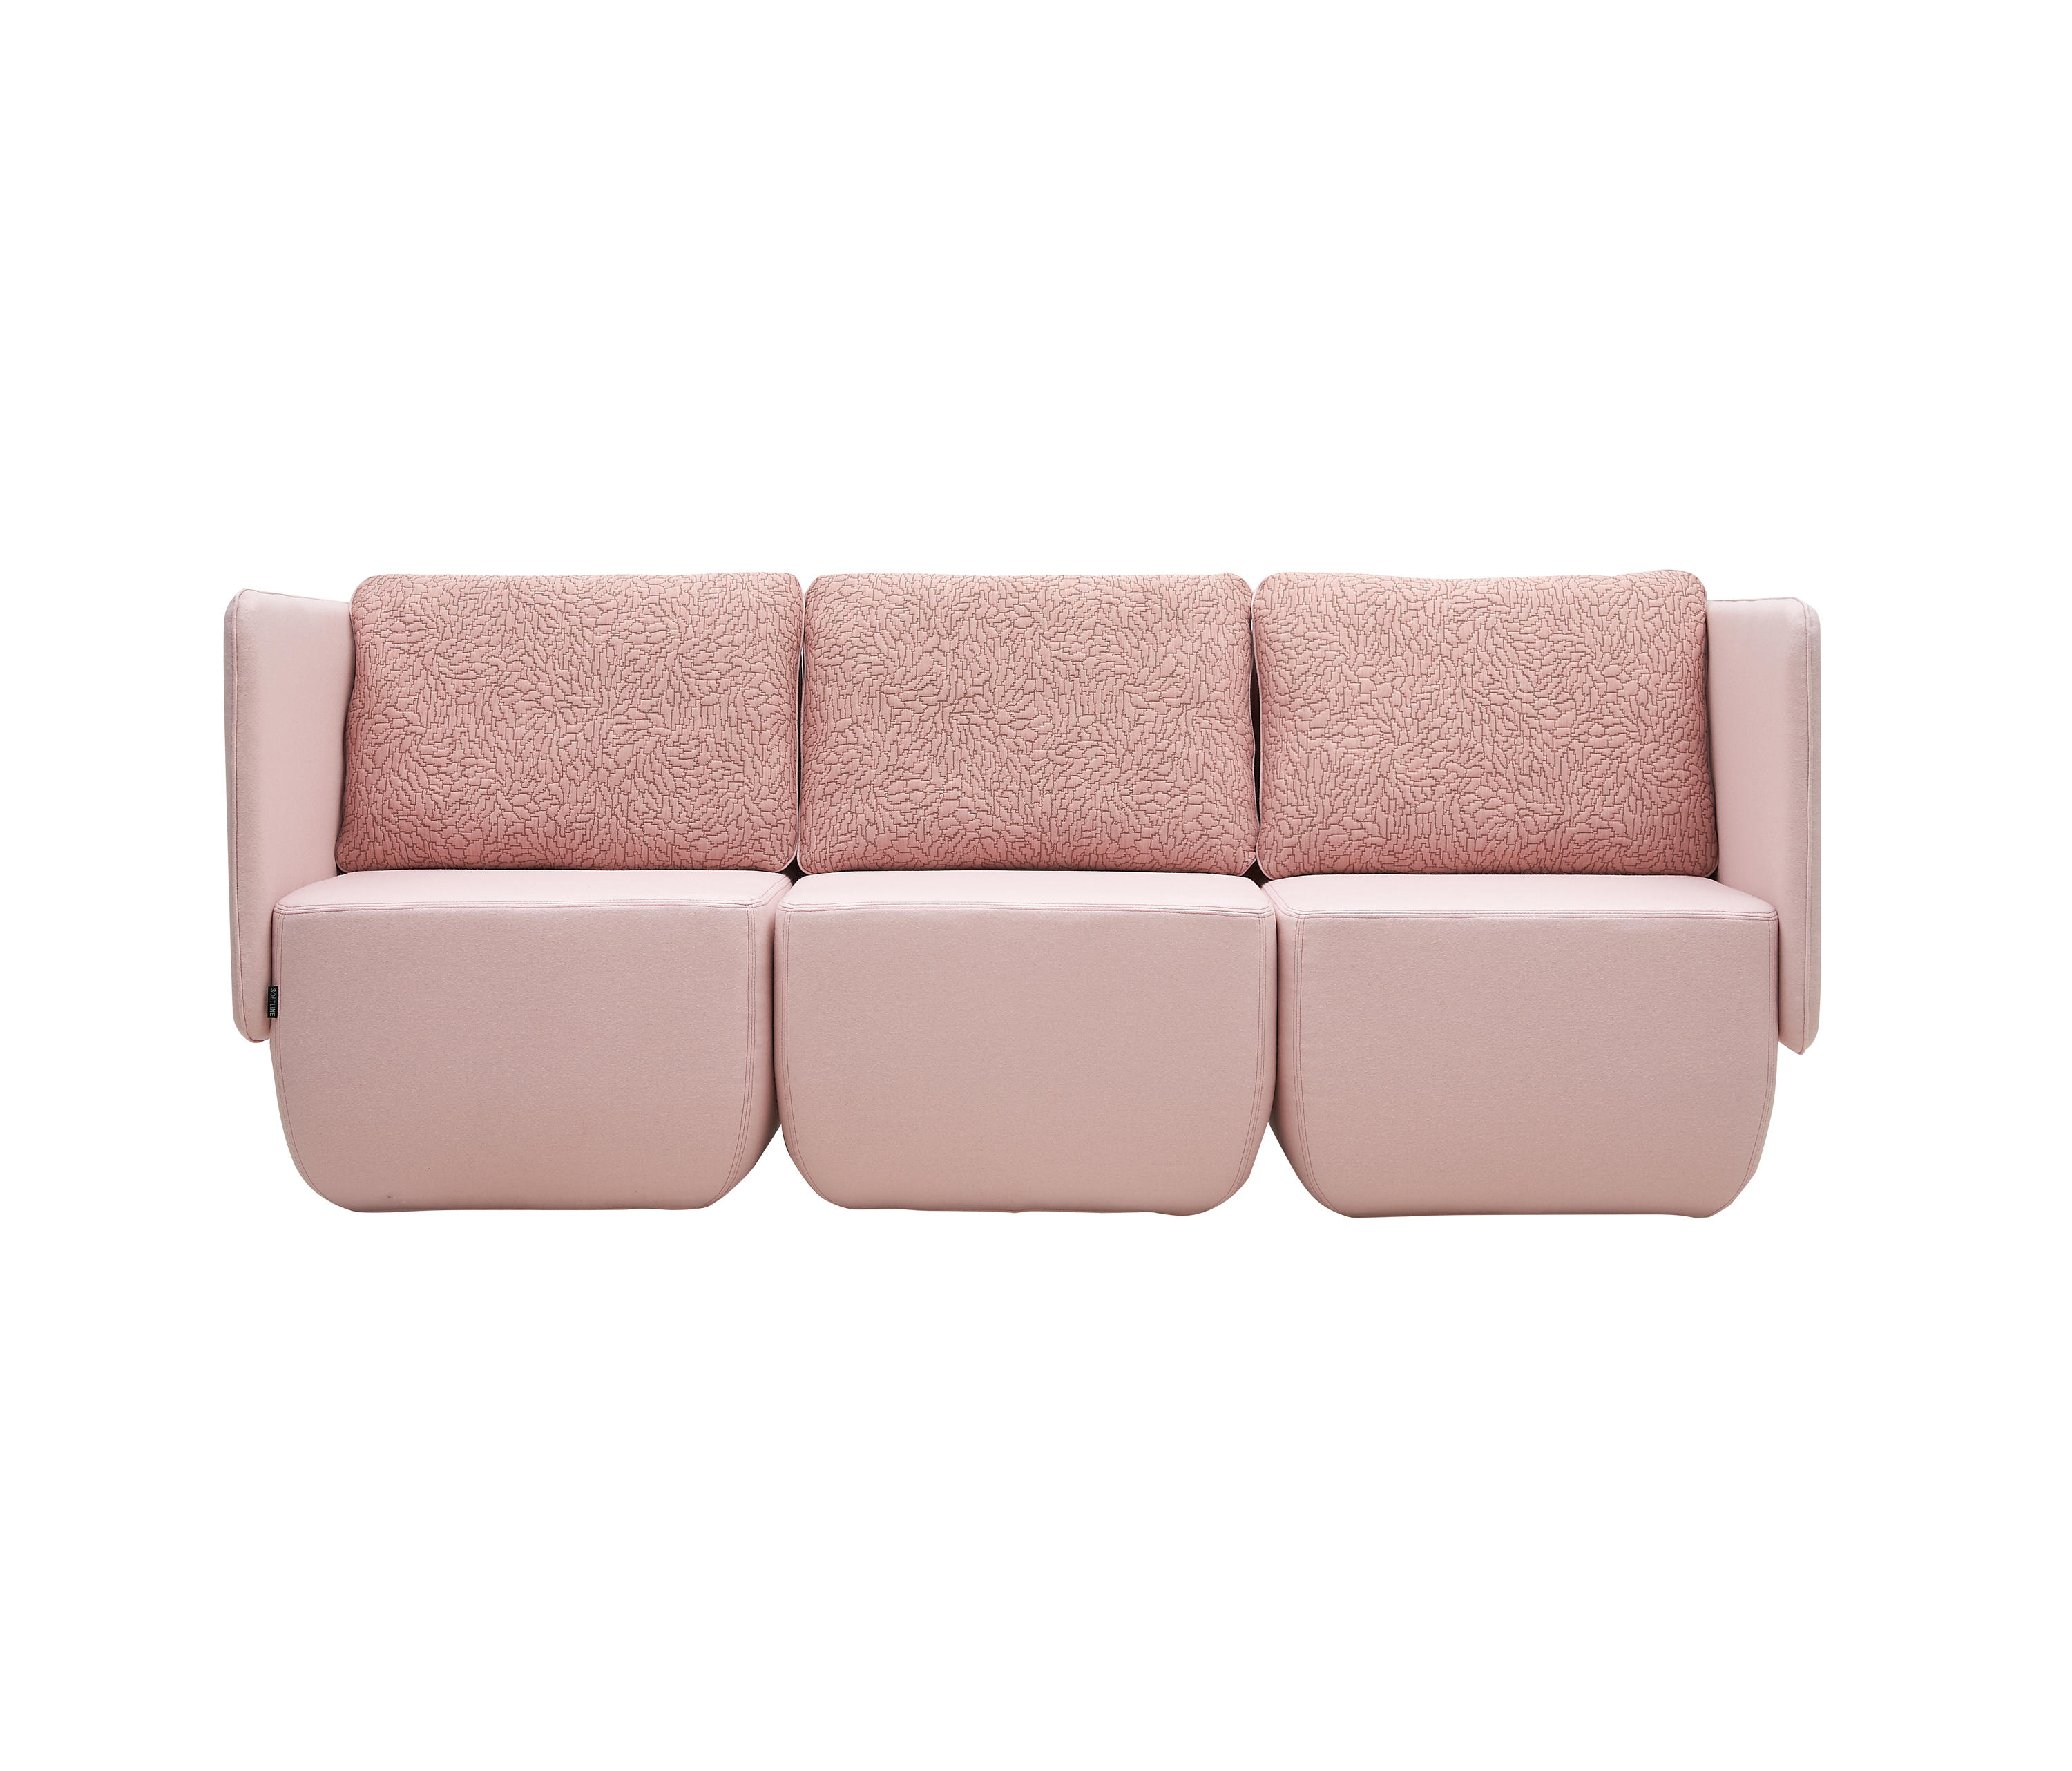 opera modular sofa lounge sofas from softline a s architonic. Black Bedroom Furniture Sets. Home Design Ideas